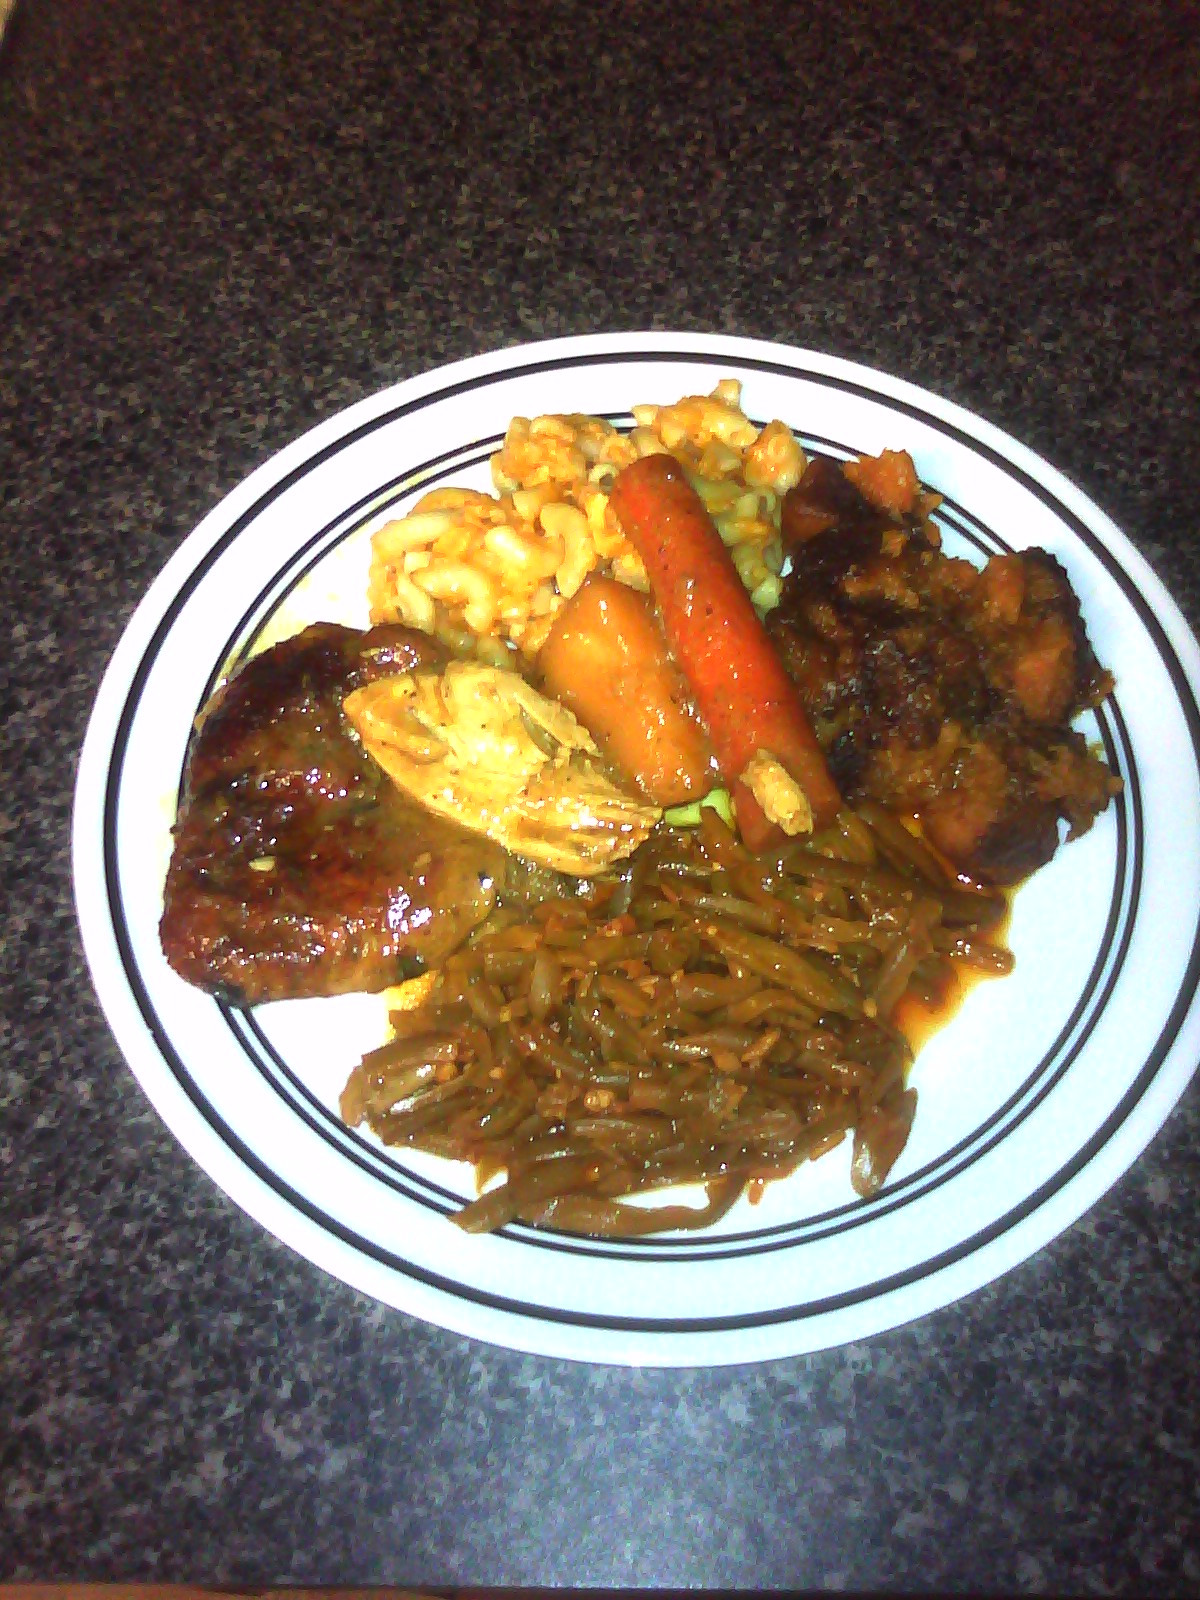 Baked Chicken Mac And Cheese  oul Food baked chicken mac and cheese can d yams